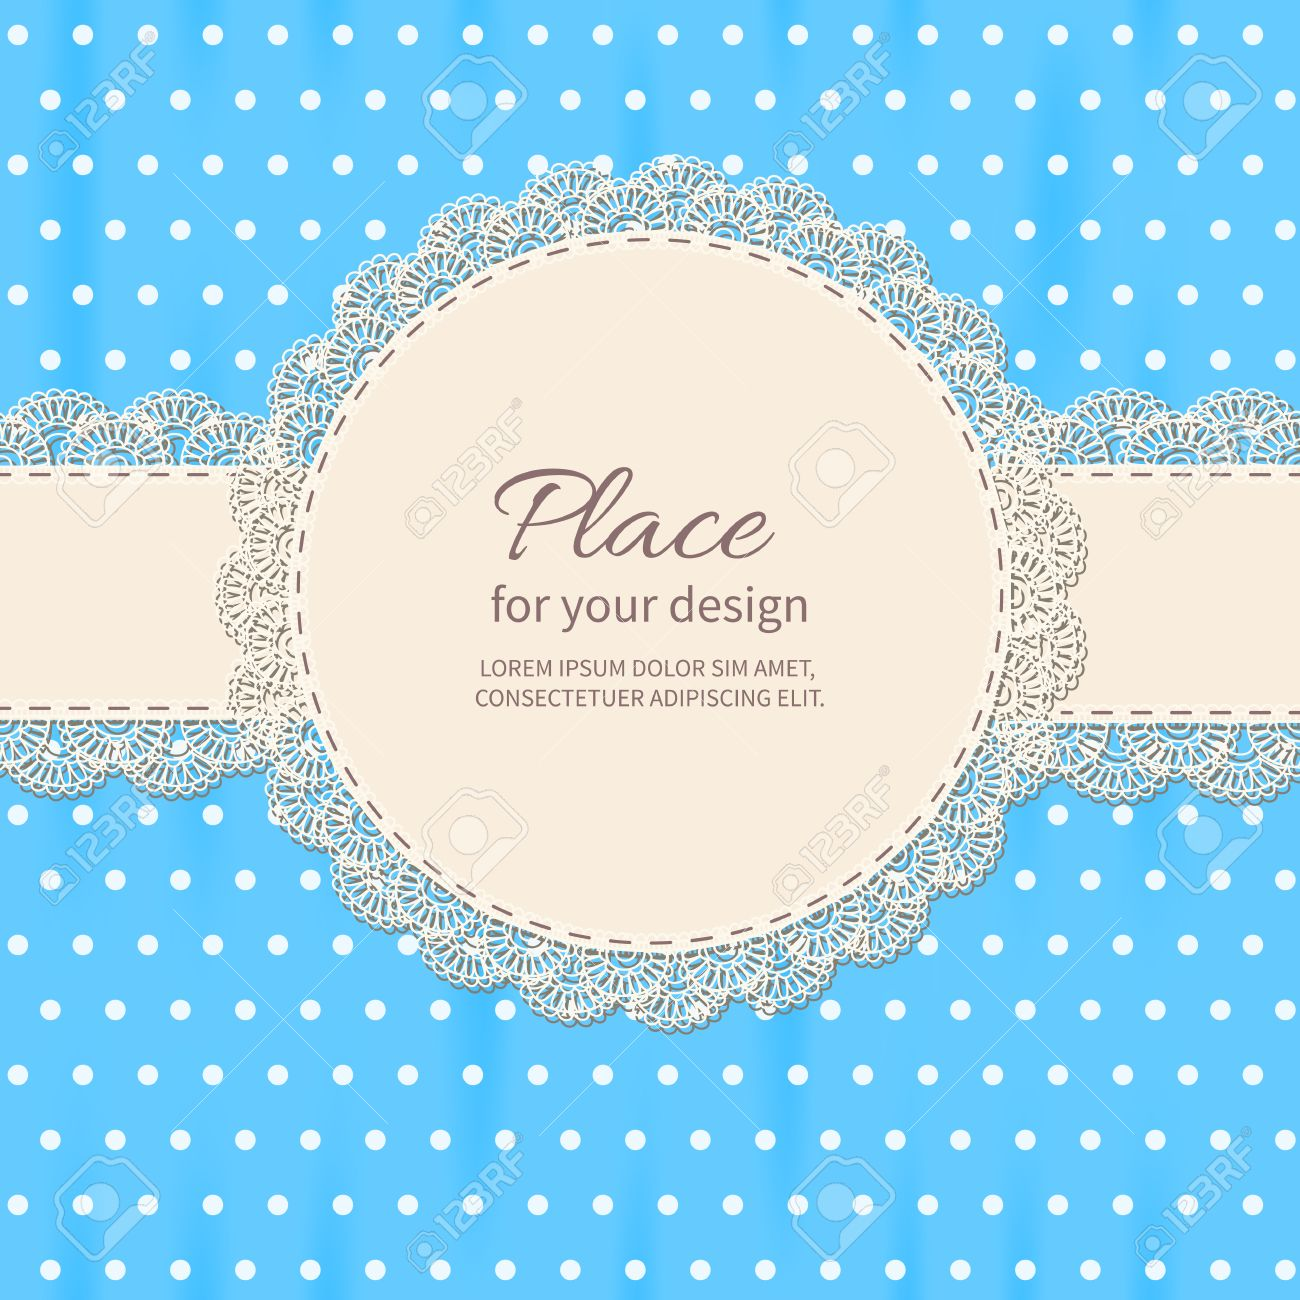 Retro background with lace and polka-dot wallpaper.Baby shower frame. Stock Vector